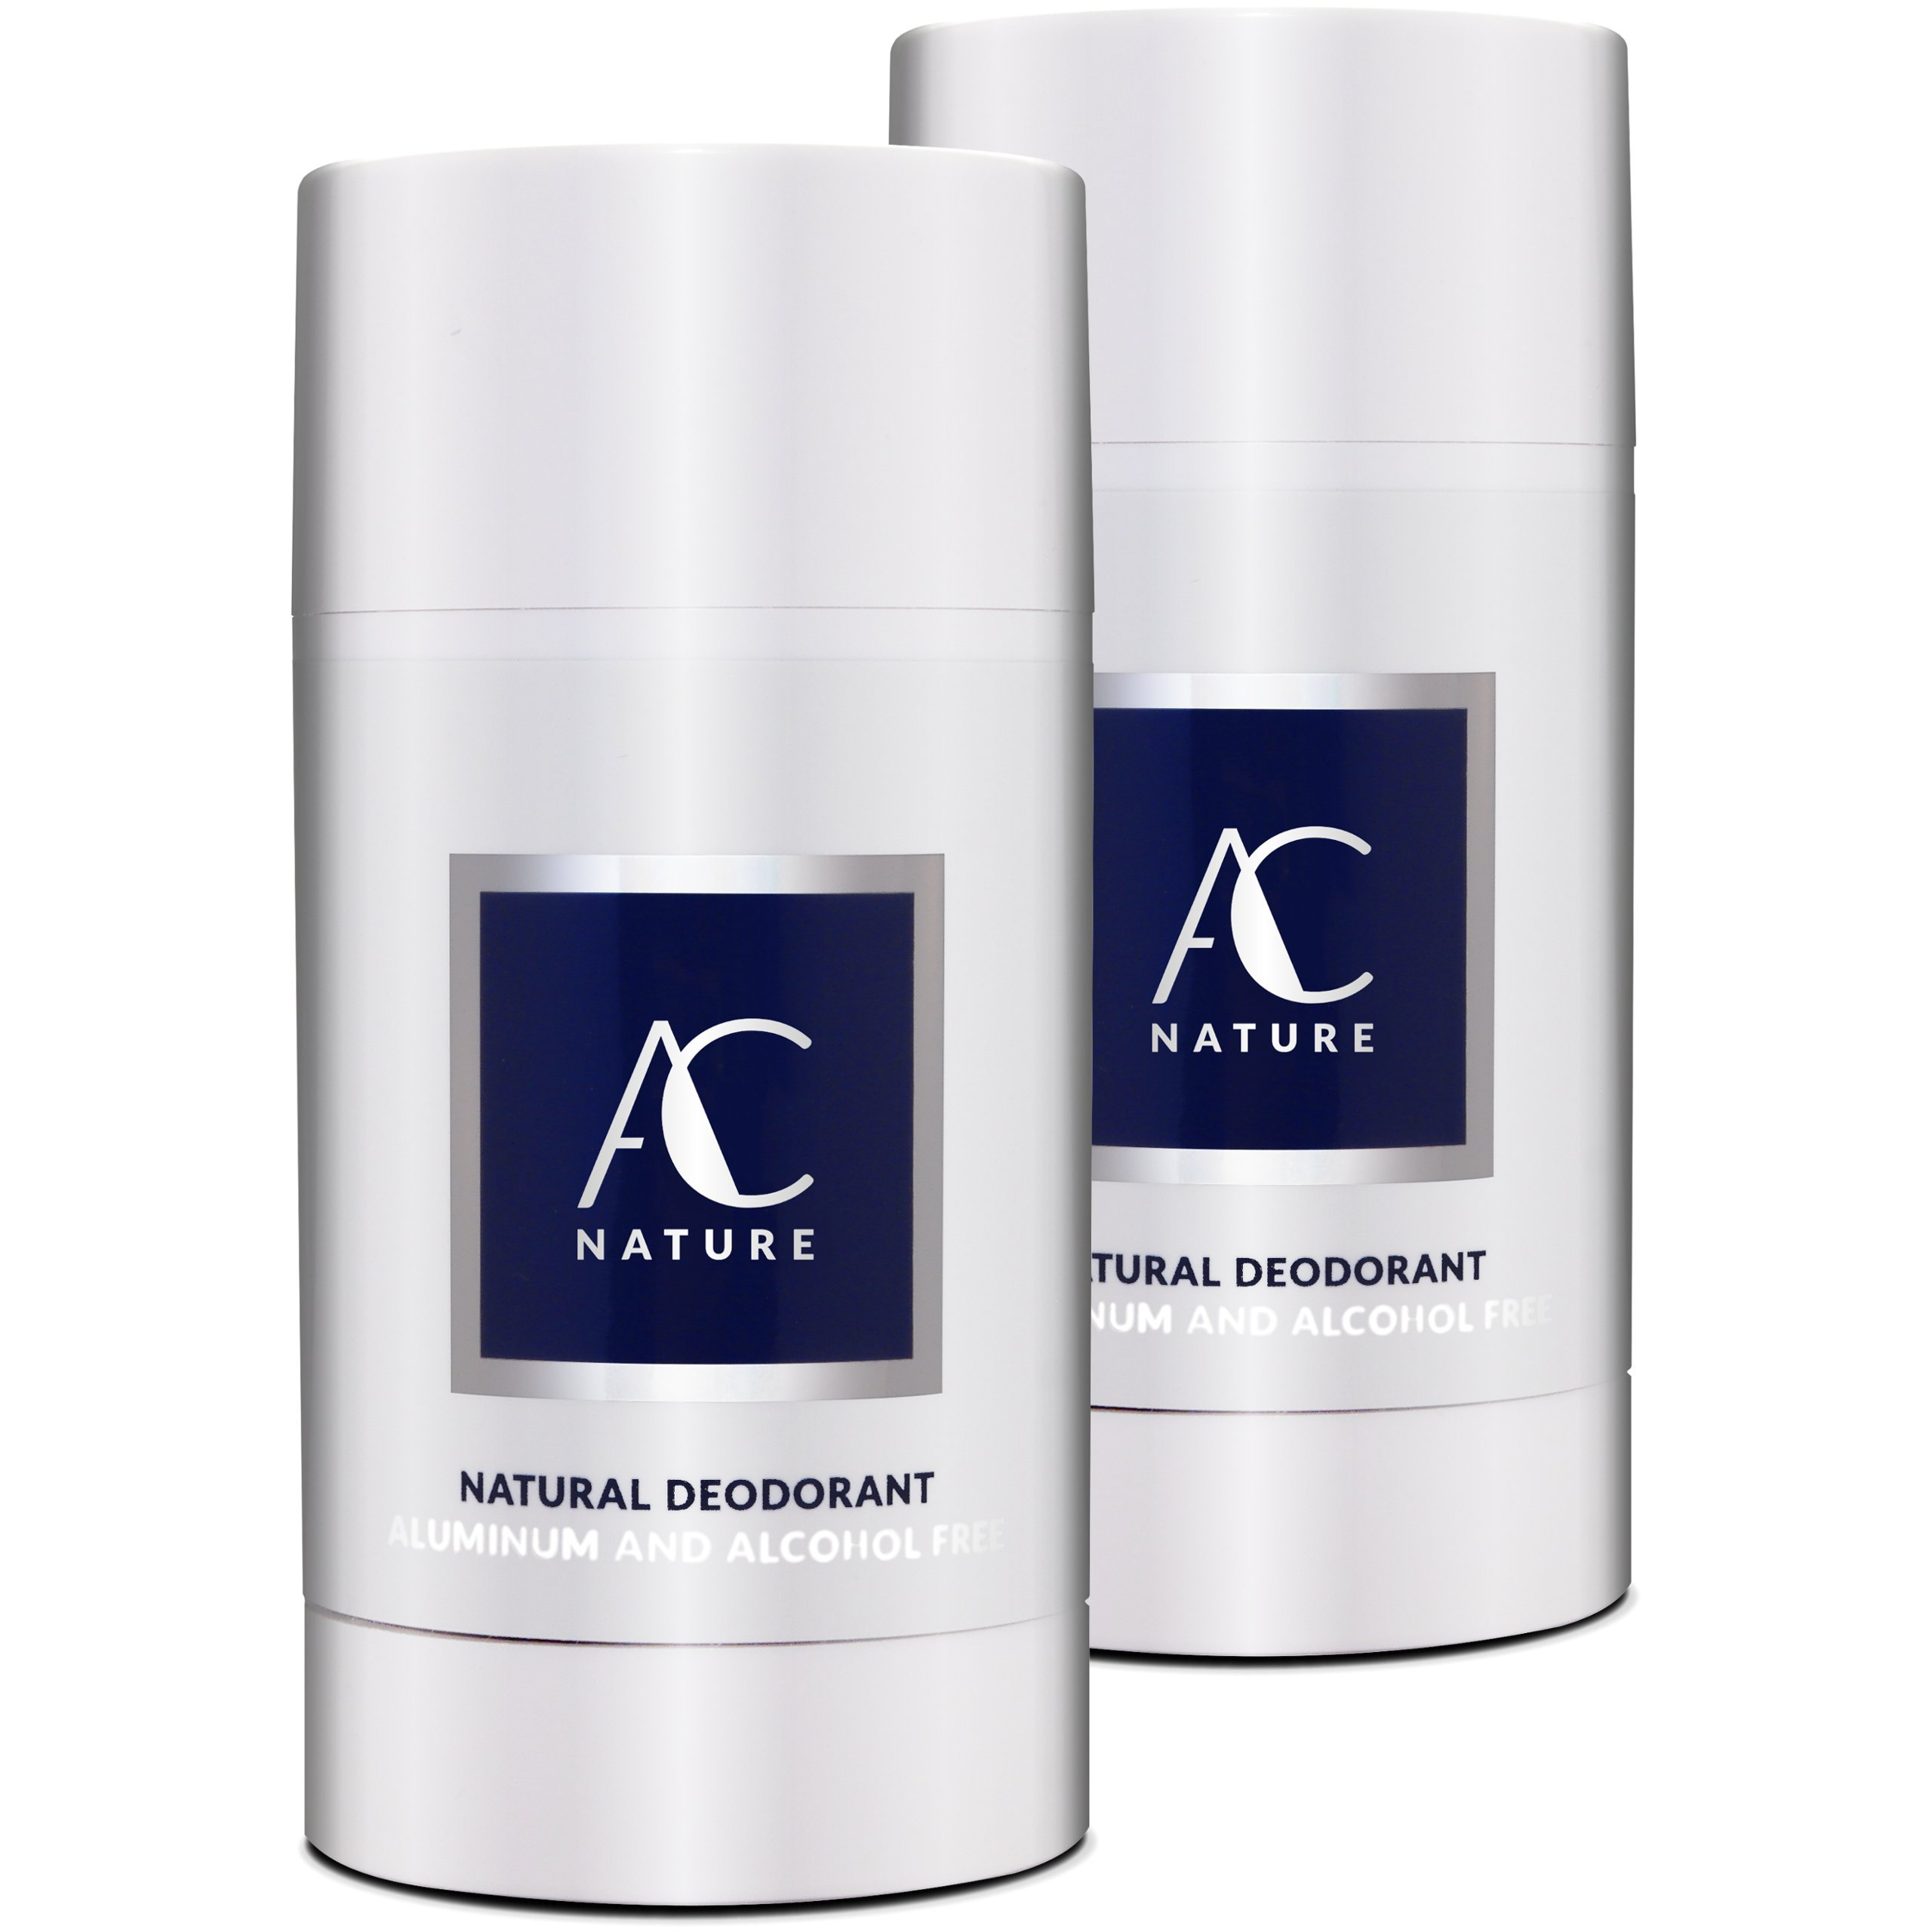 AC NATURE Lavender Natural Deodorant Stick Infused with Vitamin E - High Performance & Toxic Free - (Strong - Ultimate Power, 2pc)